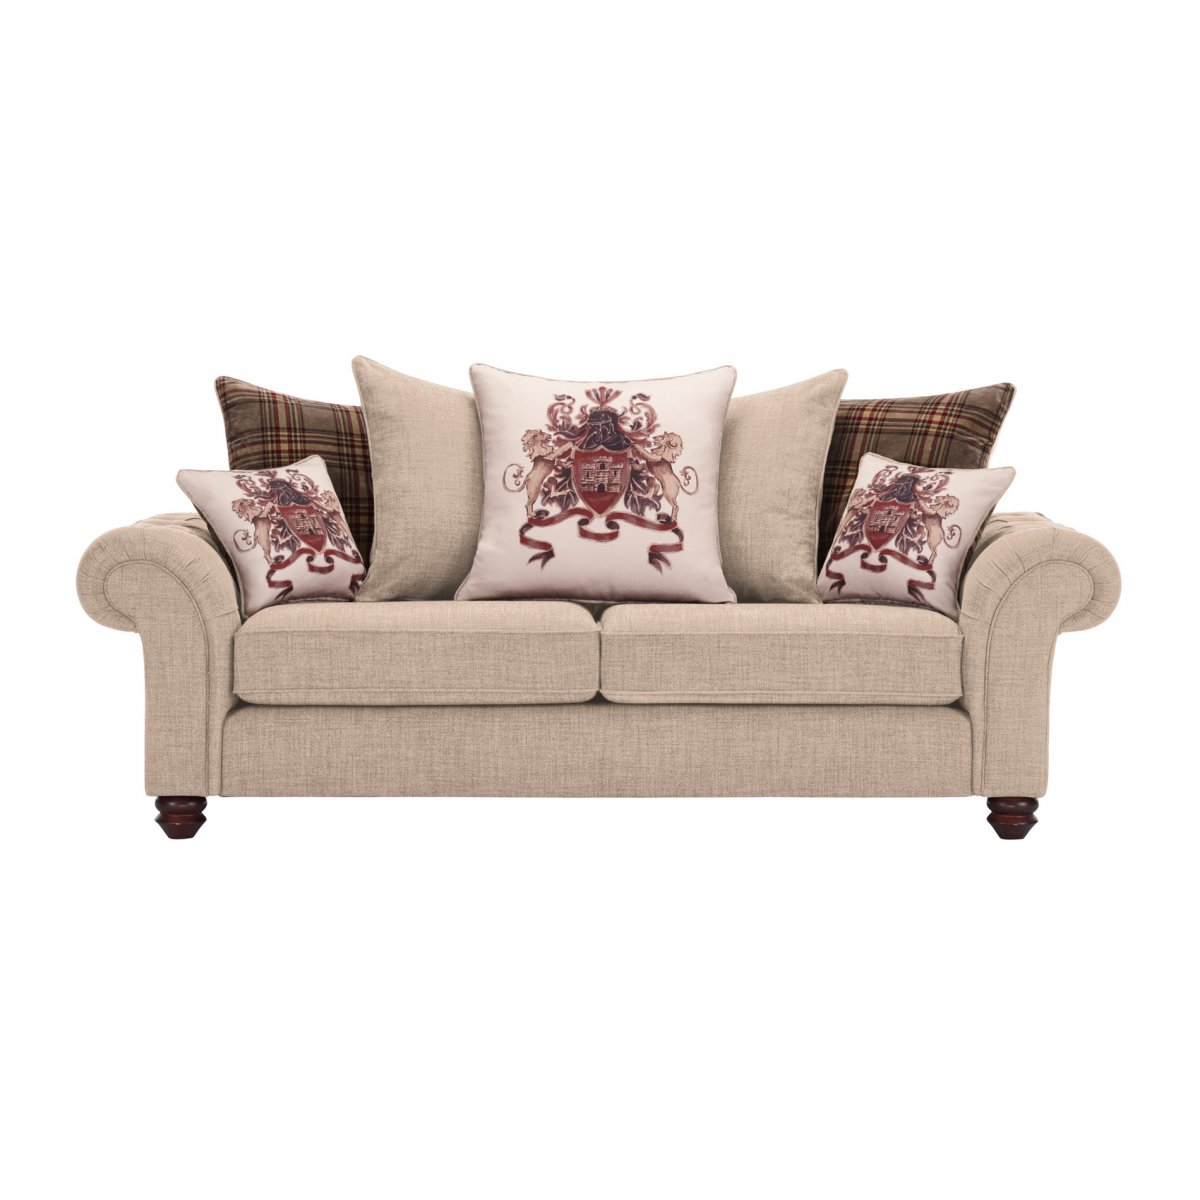 mirrors for bathrooms vanities sandringham 3 seater pillow back sofa in beige scatters 19536